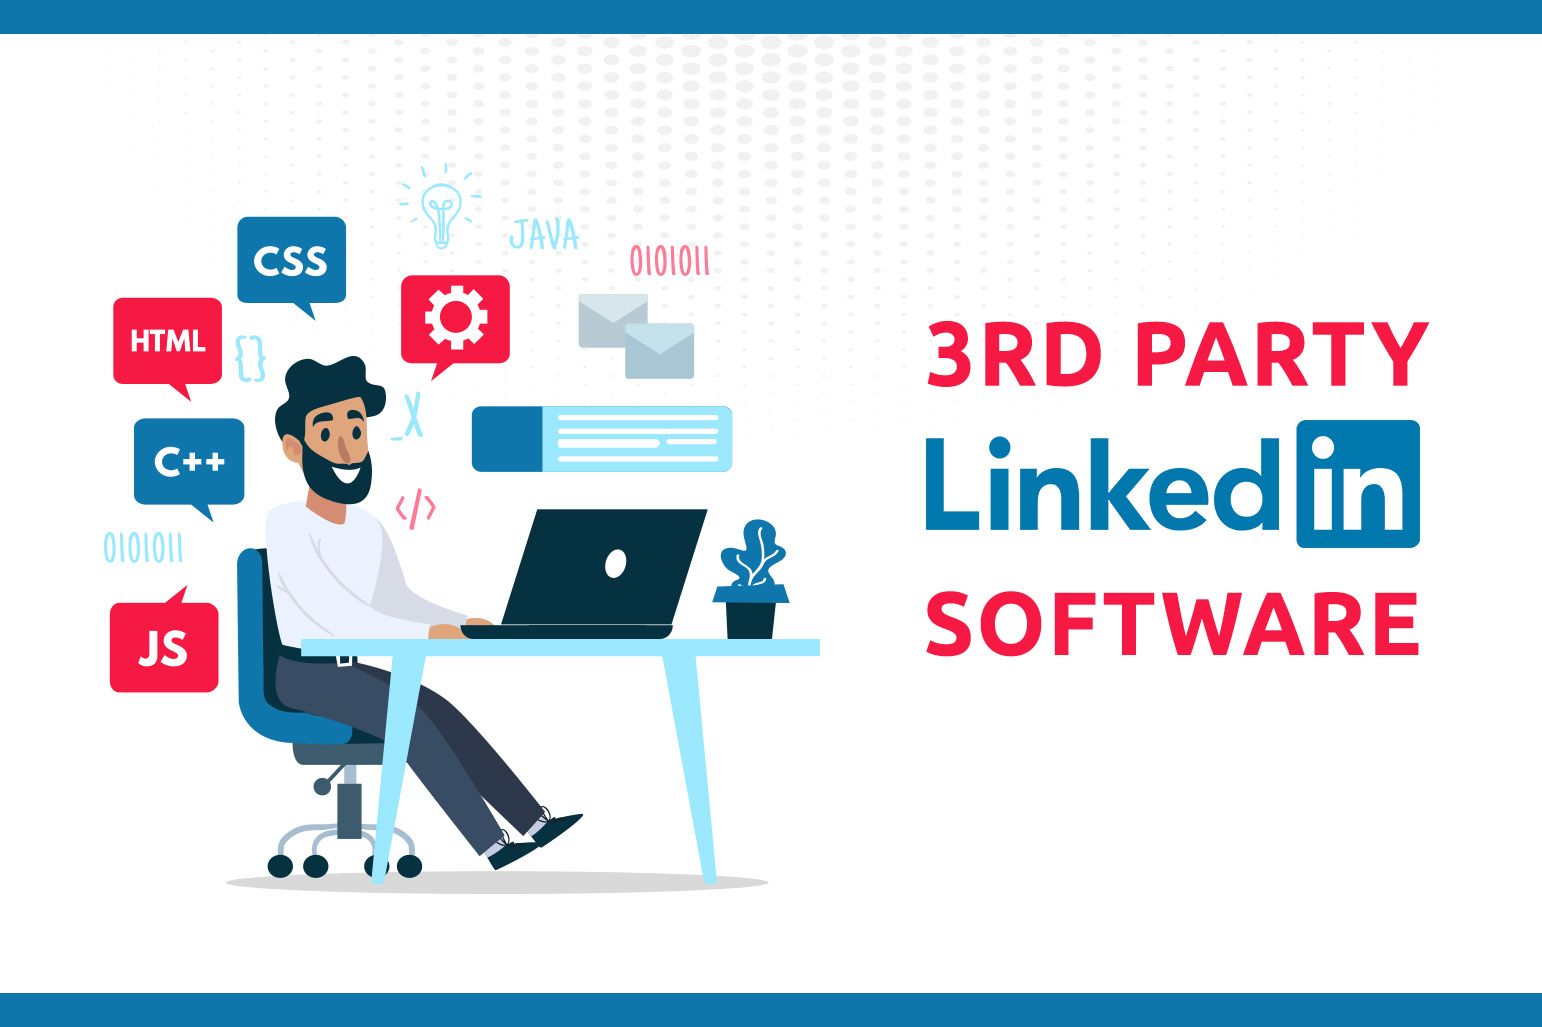 3rd Party LinkedIn Software